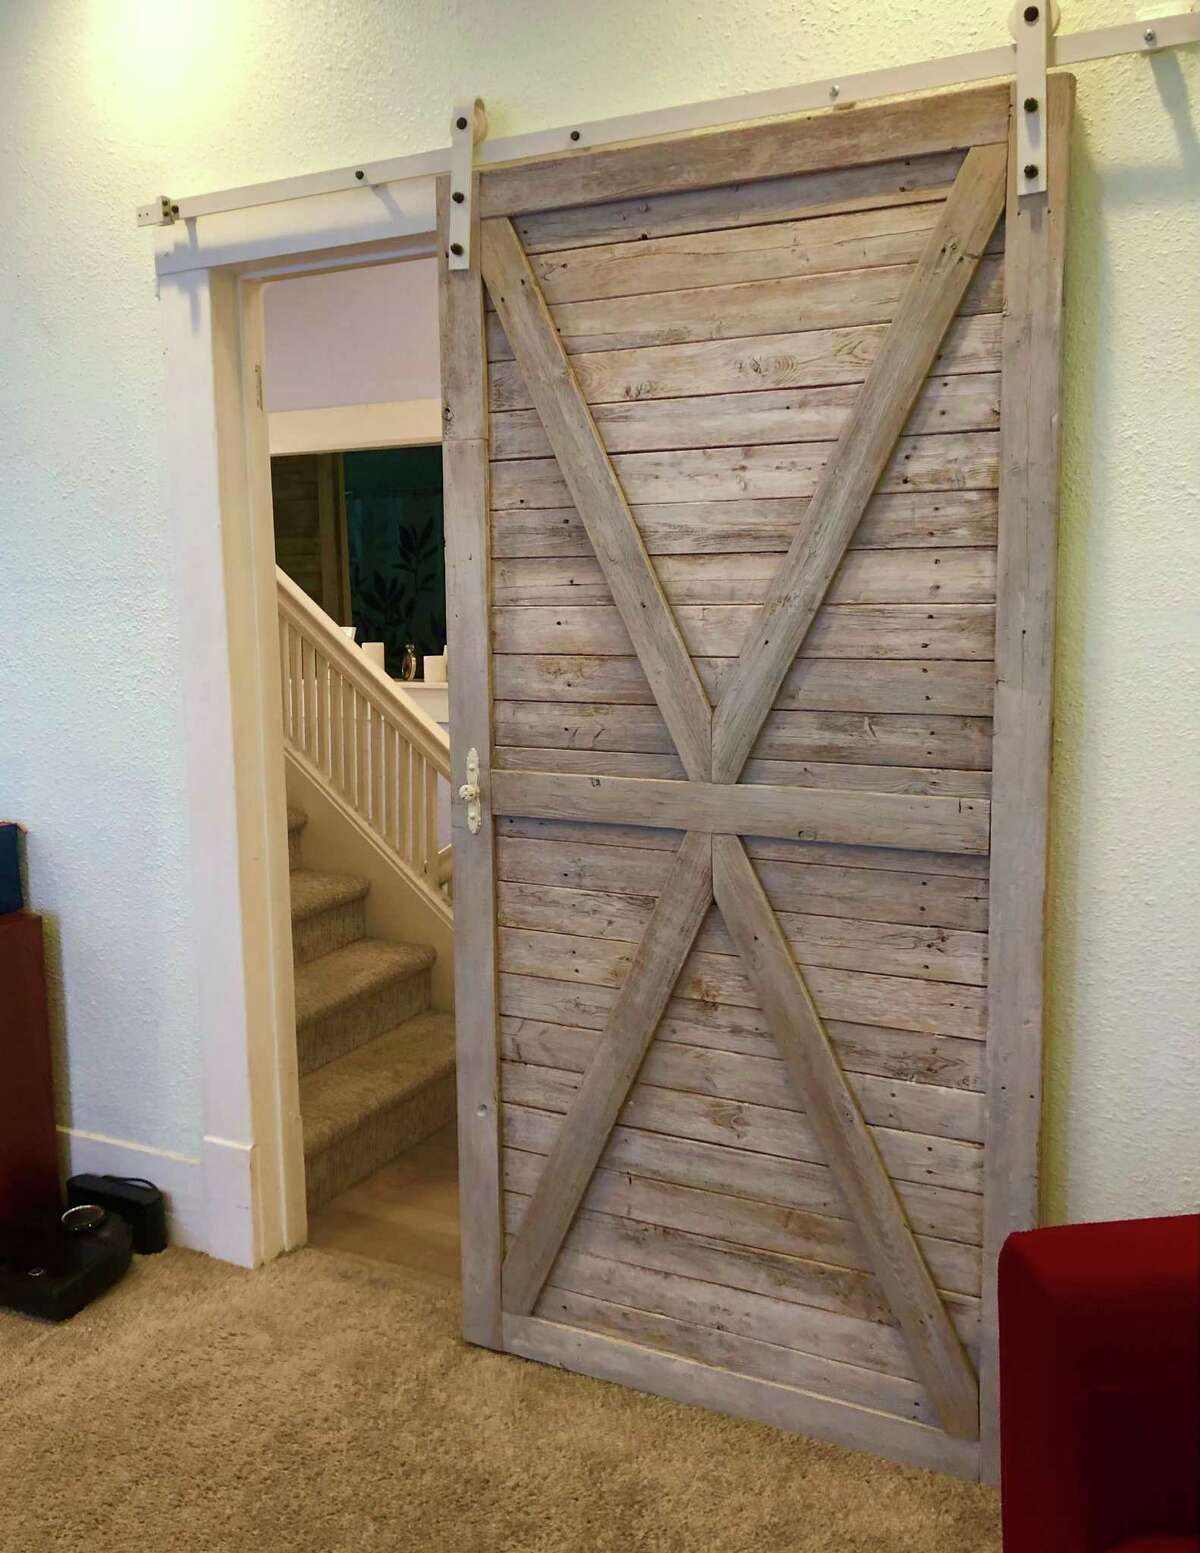 There are several farmhouse-style barn doors throughout the house.